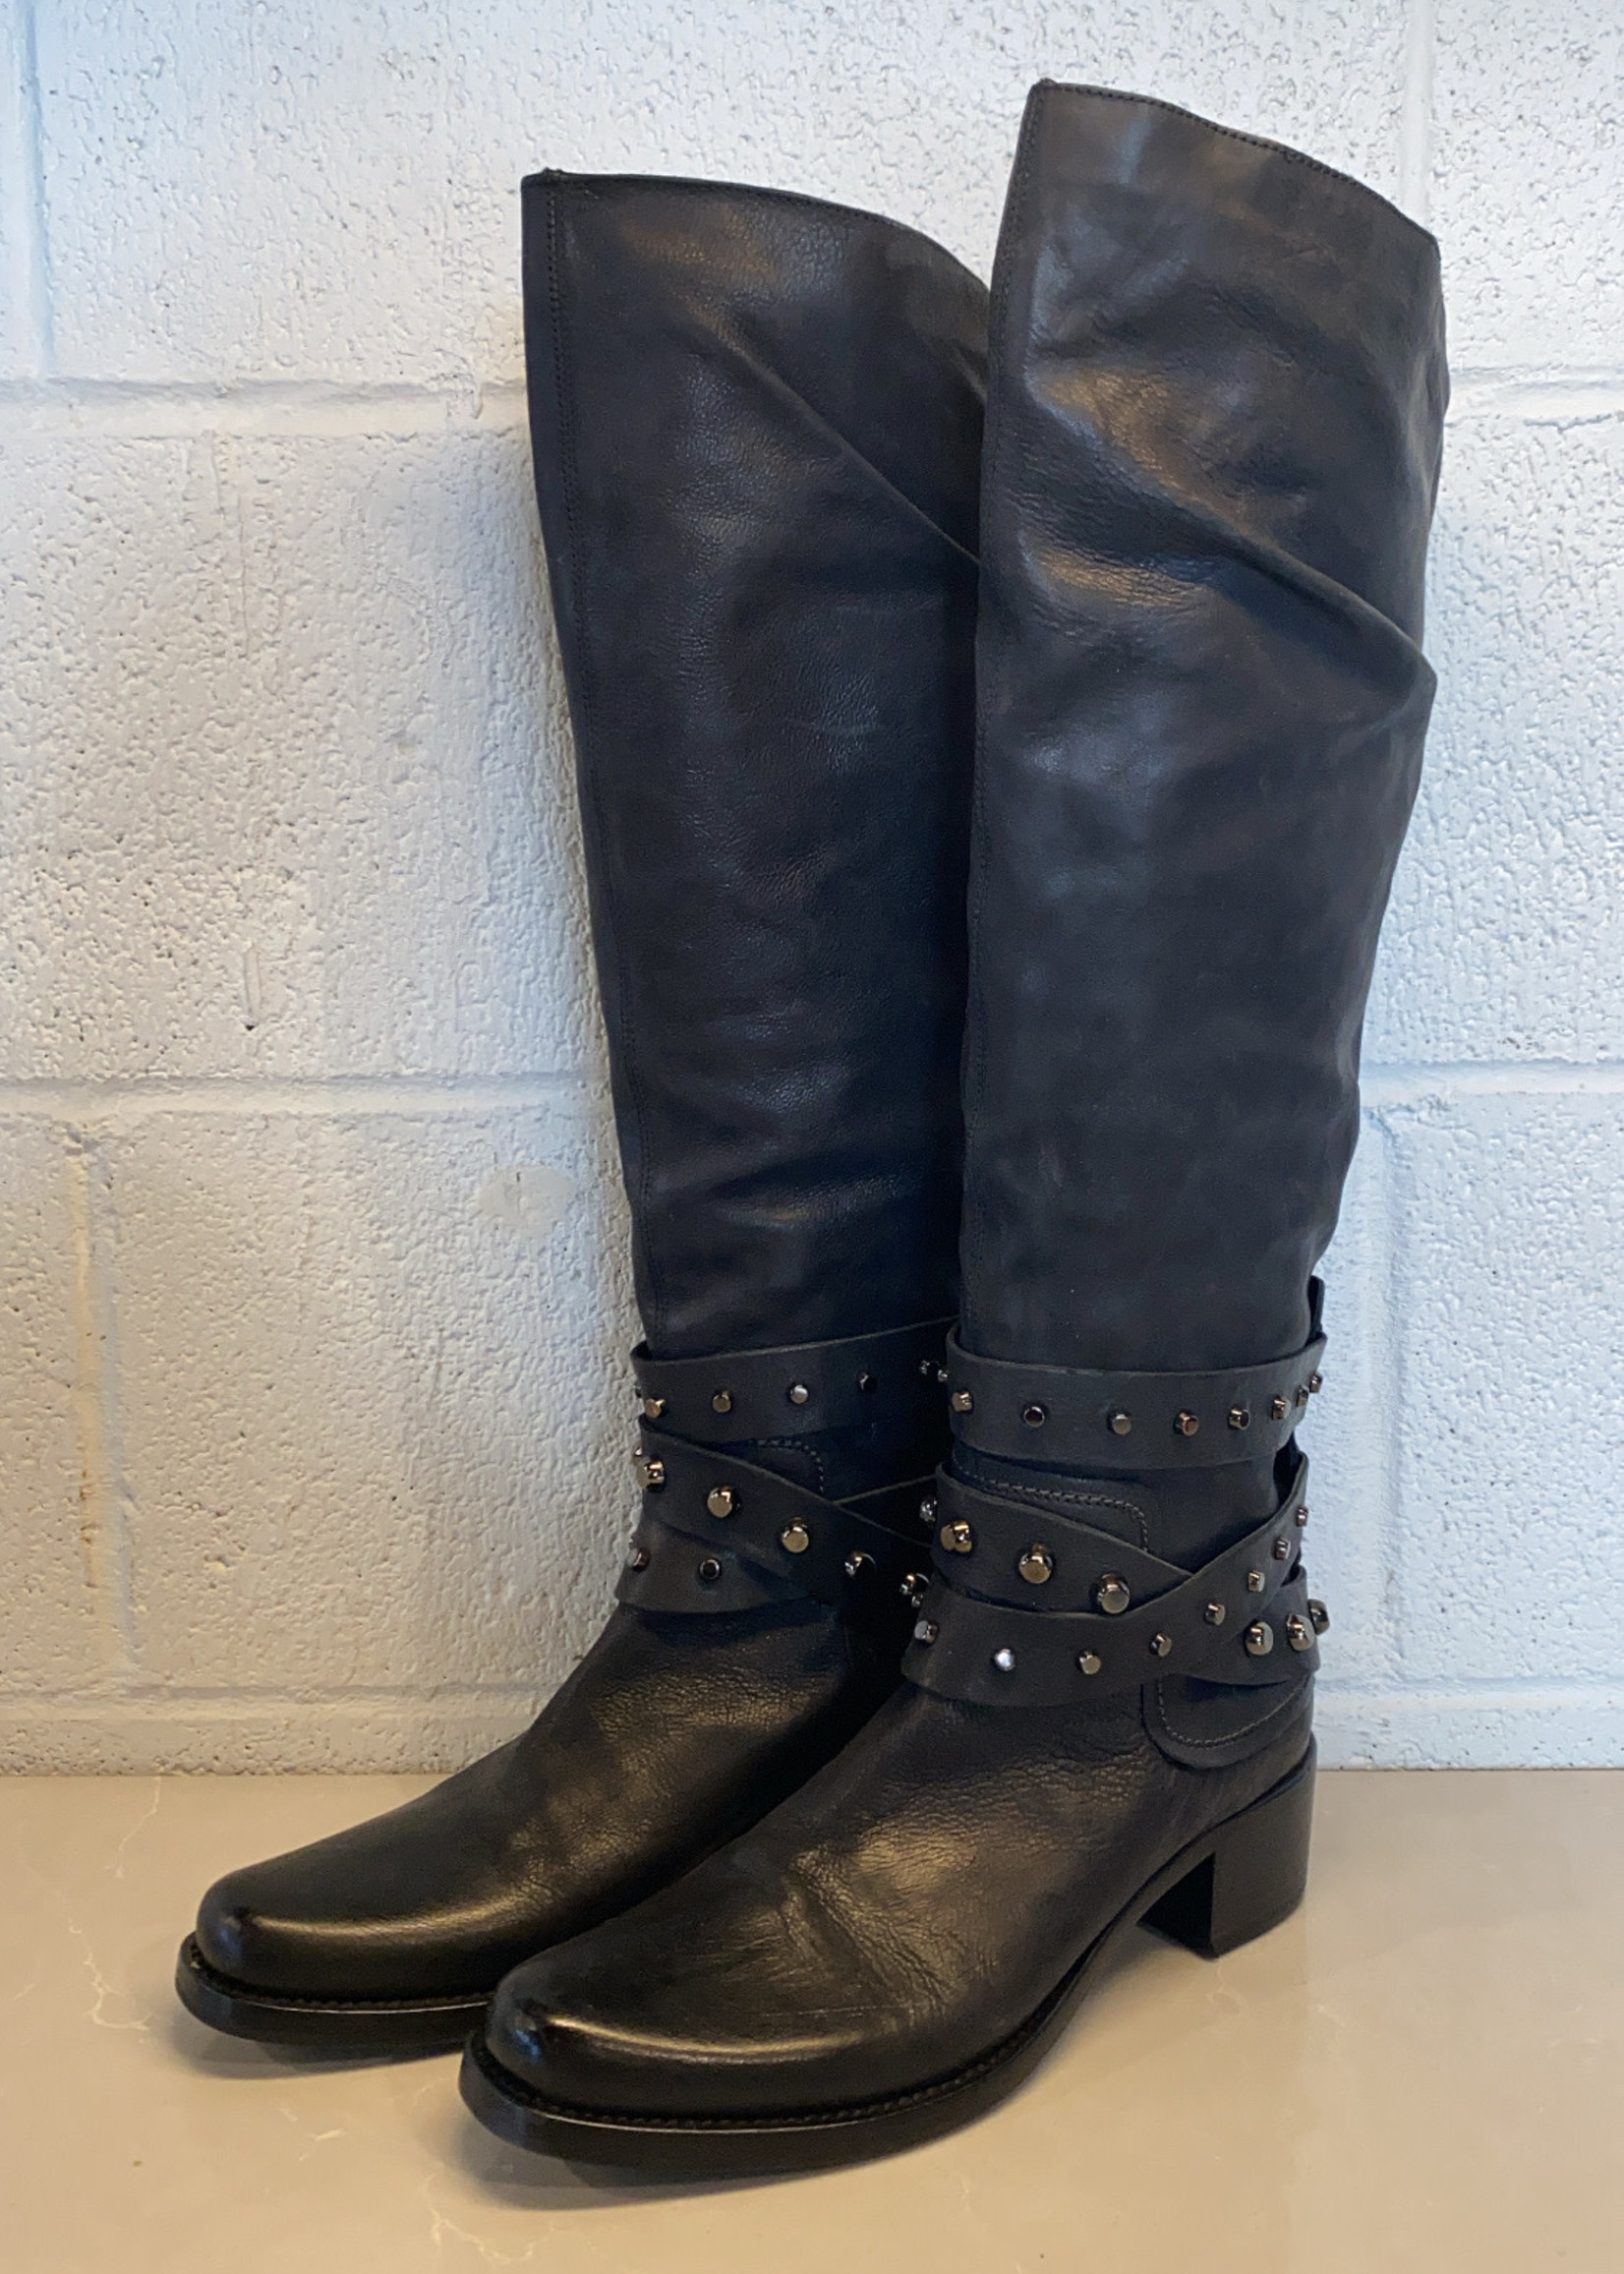 Vic Matie Black Leather Studded Boots 38.5